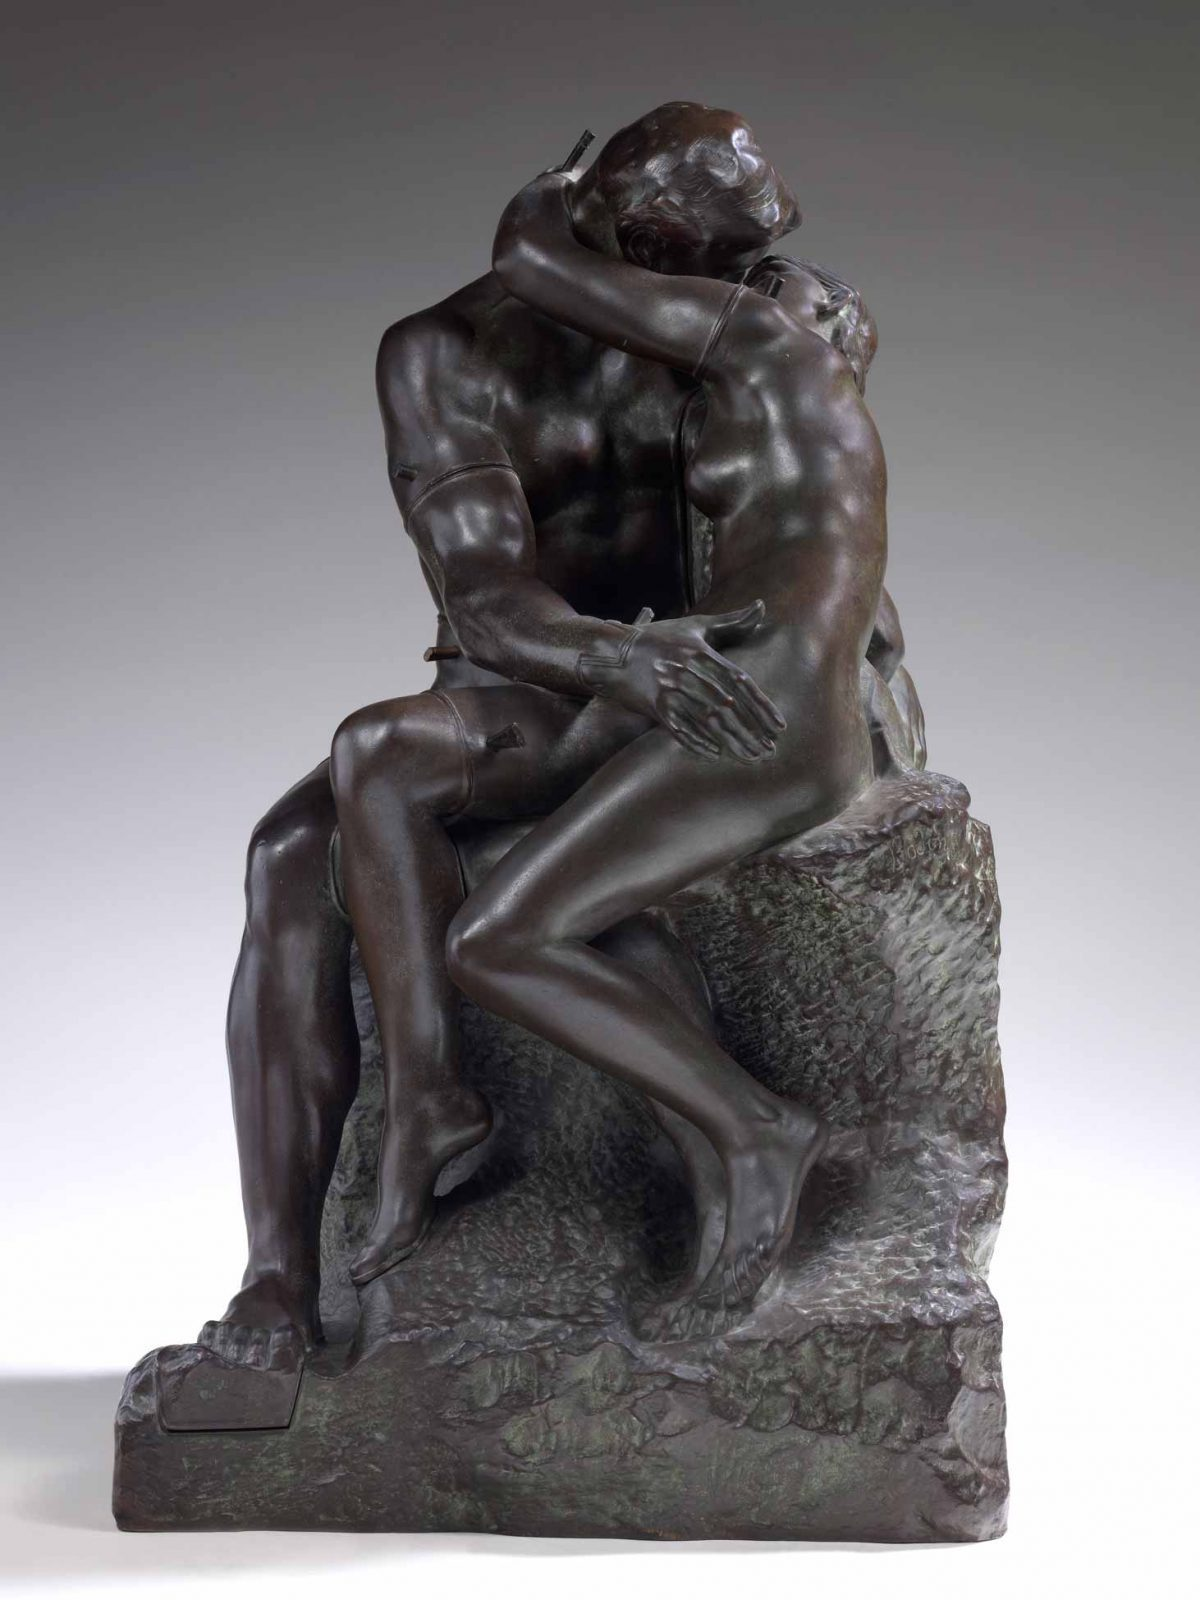 Kiss. From Rodin to Bob Dylan